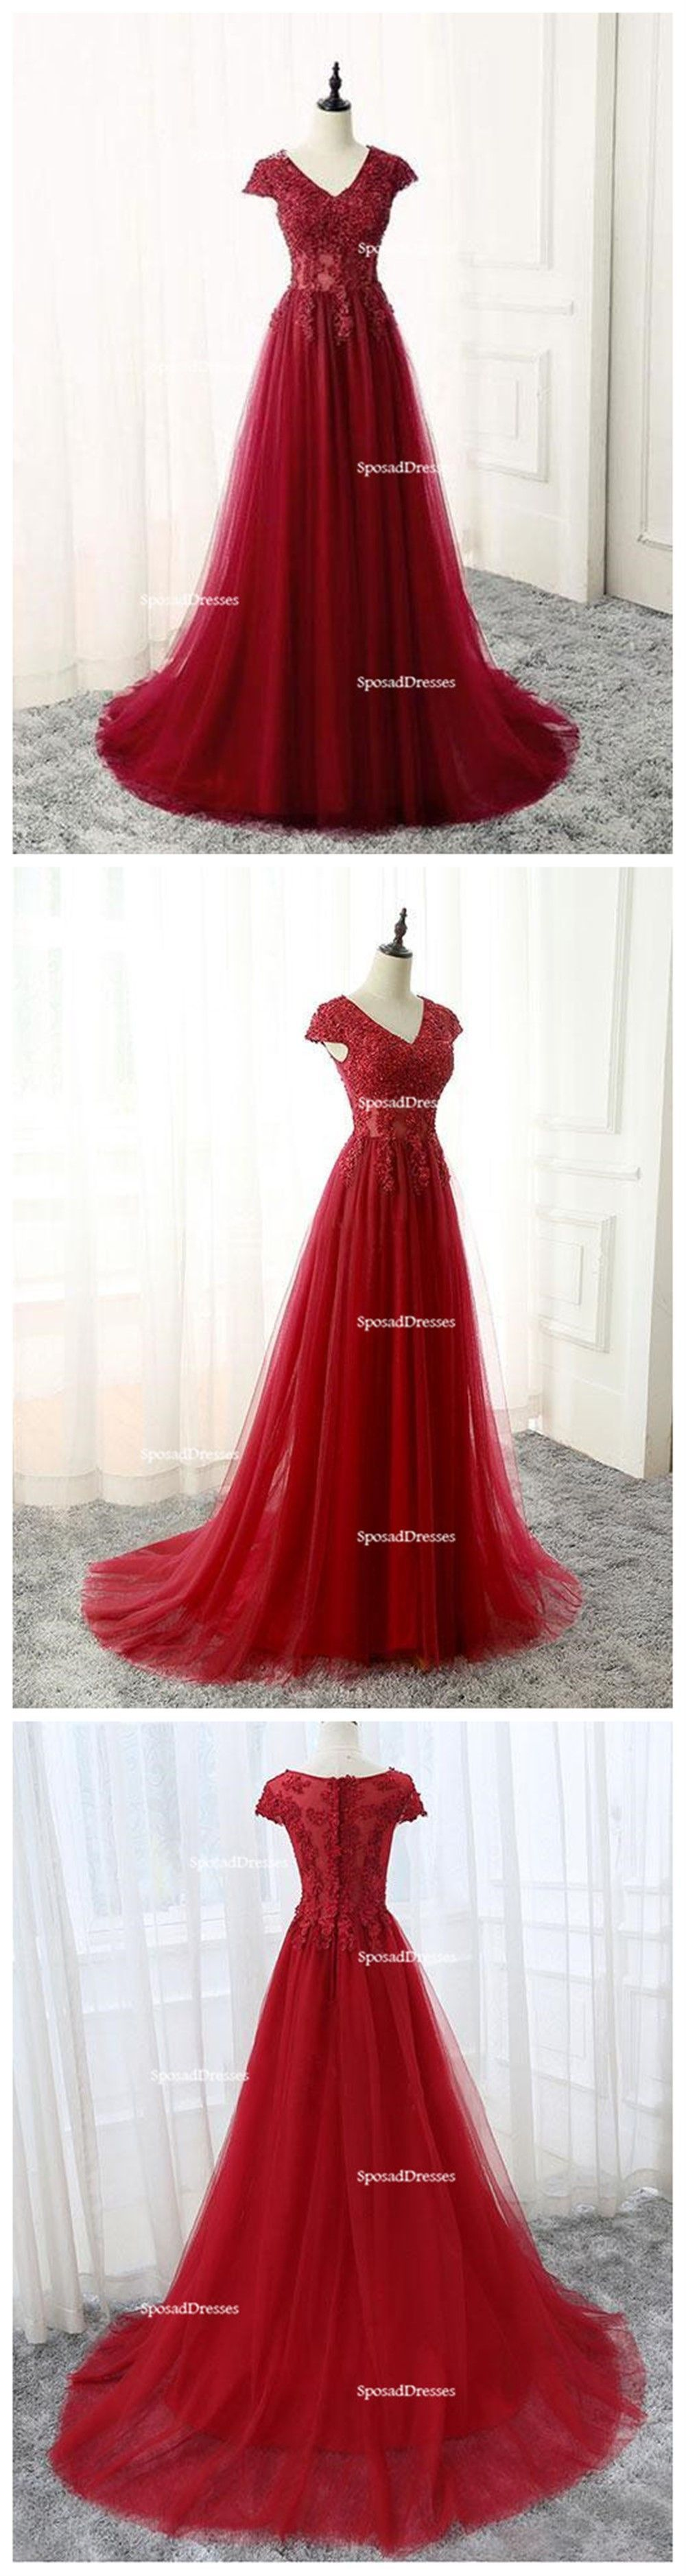 Red lace cap sleeve v neckline sexy see through long evening prom